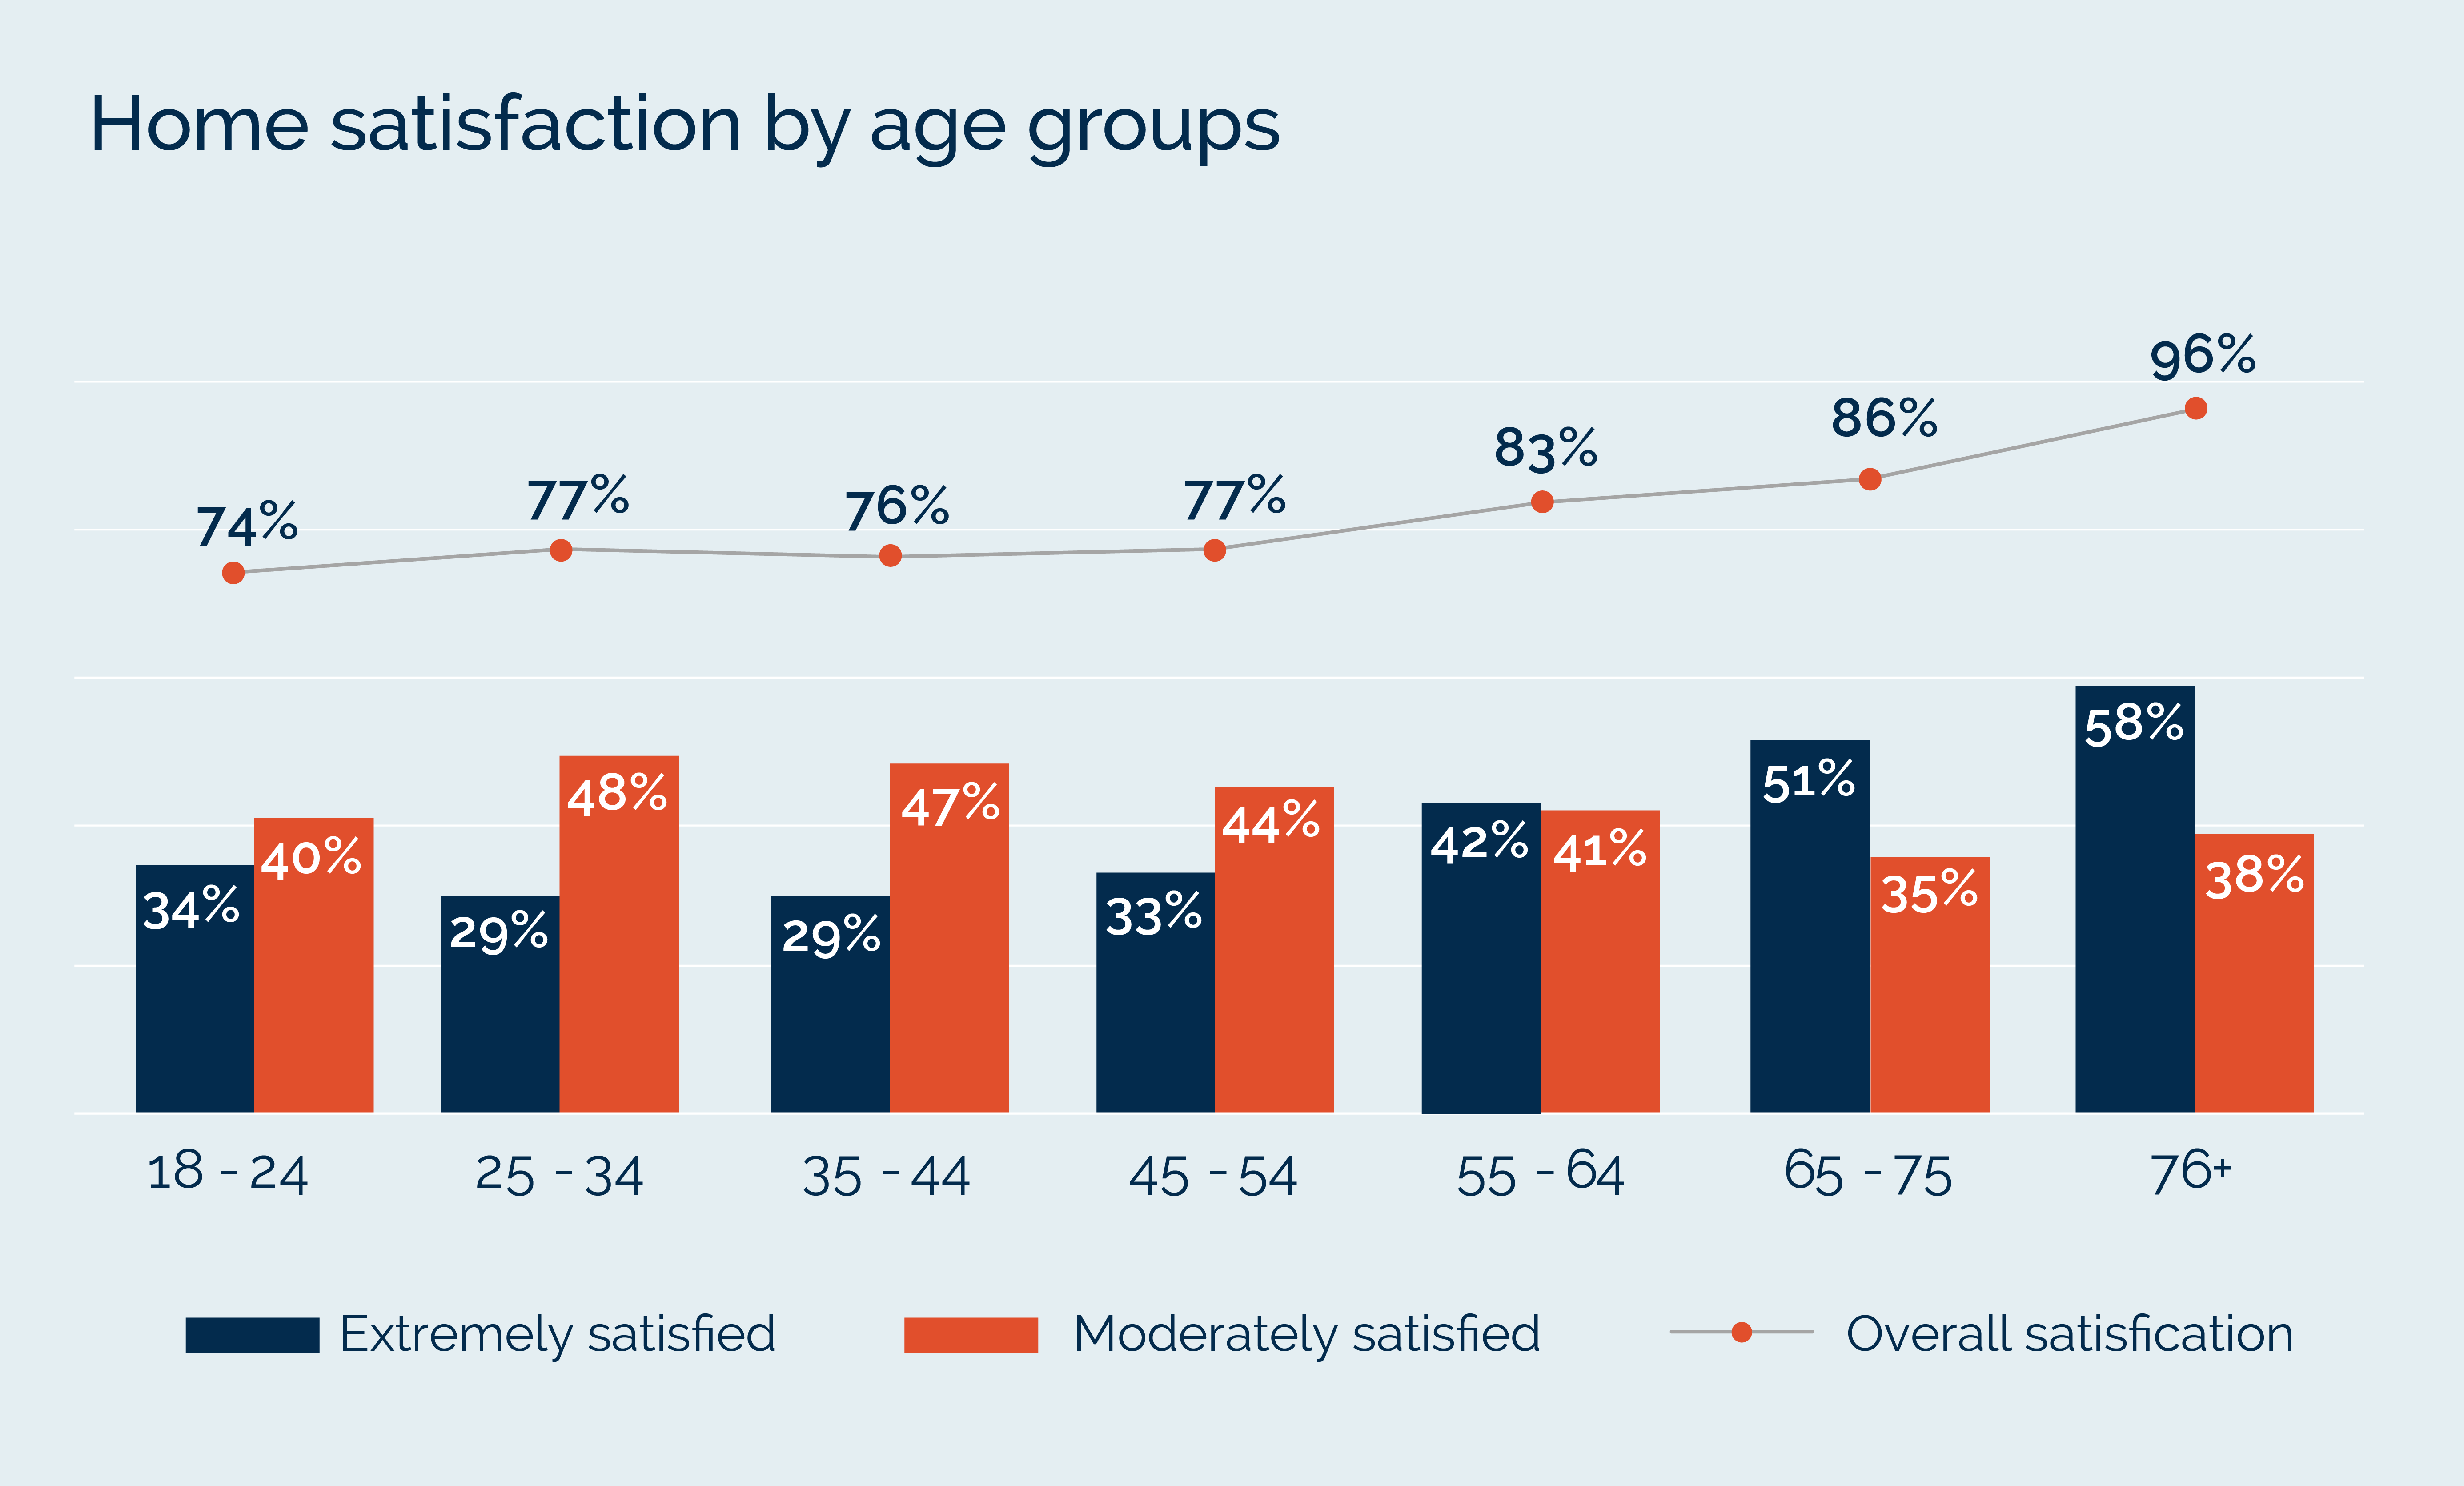 Home satisfaction by age groups